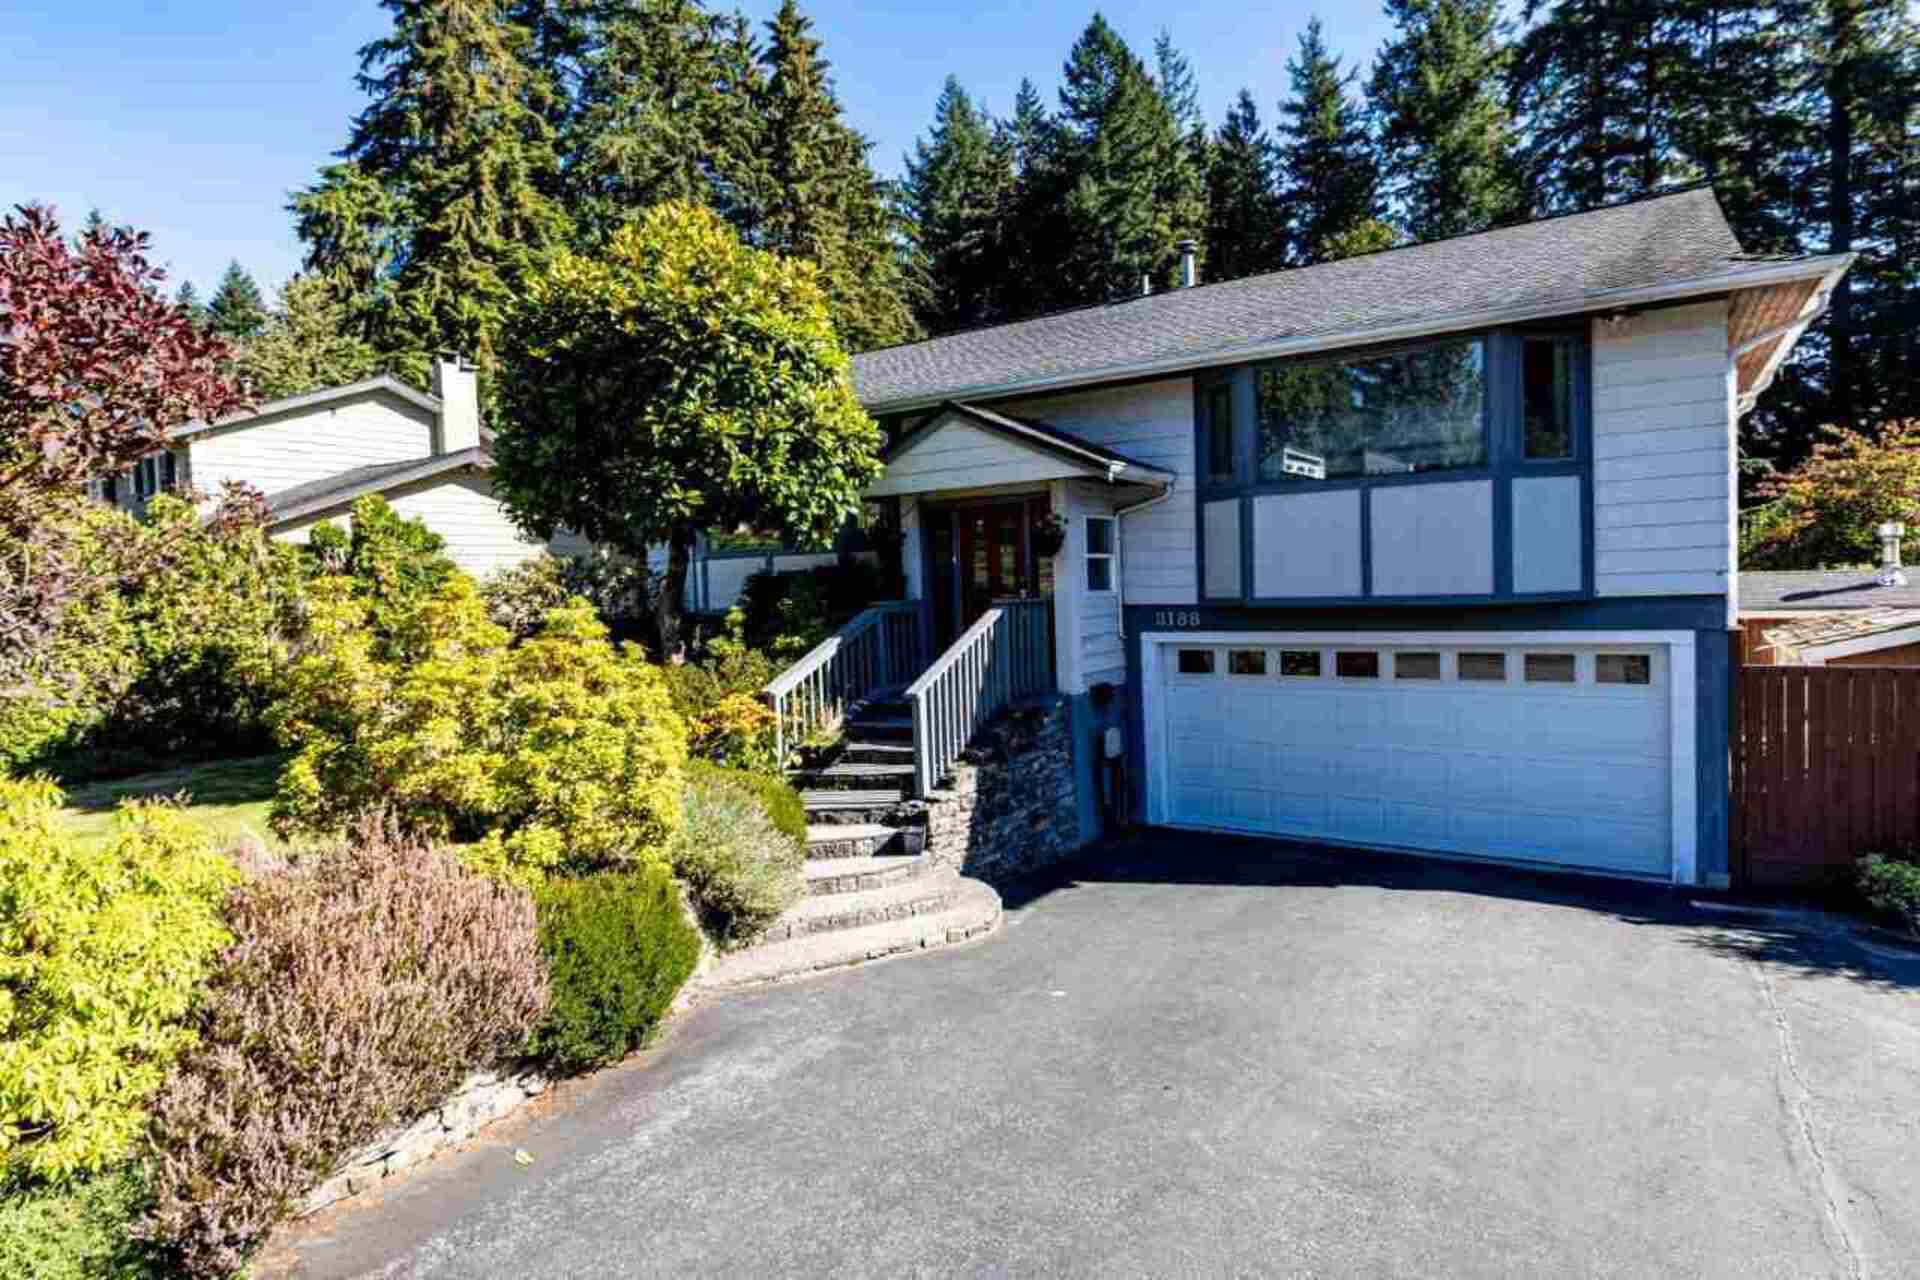 3188-robinson-road-lynn-valley-north-vancouver-01 at 3188 Robinson Road, Lynn Valley, North Vancouver